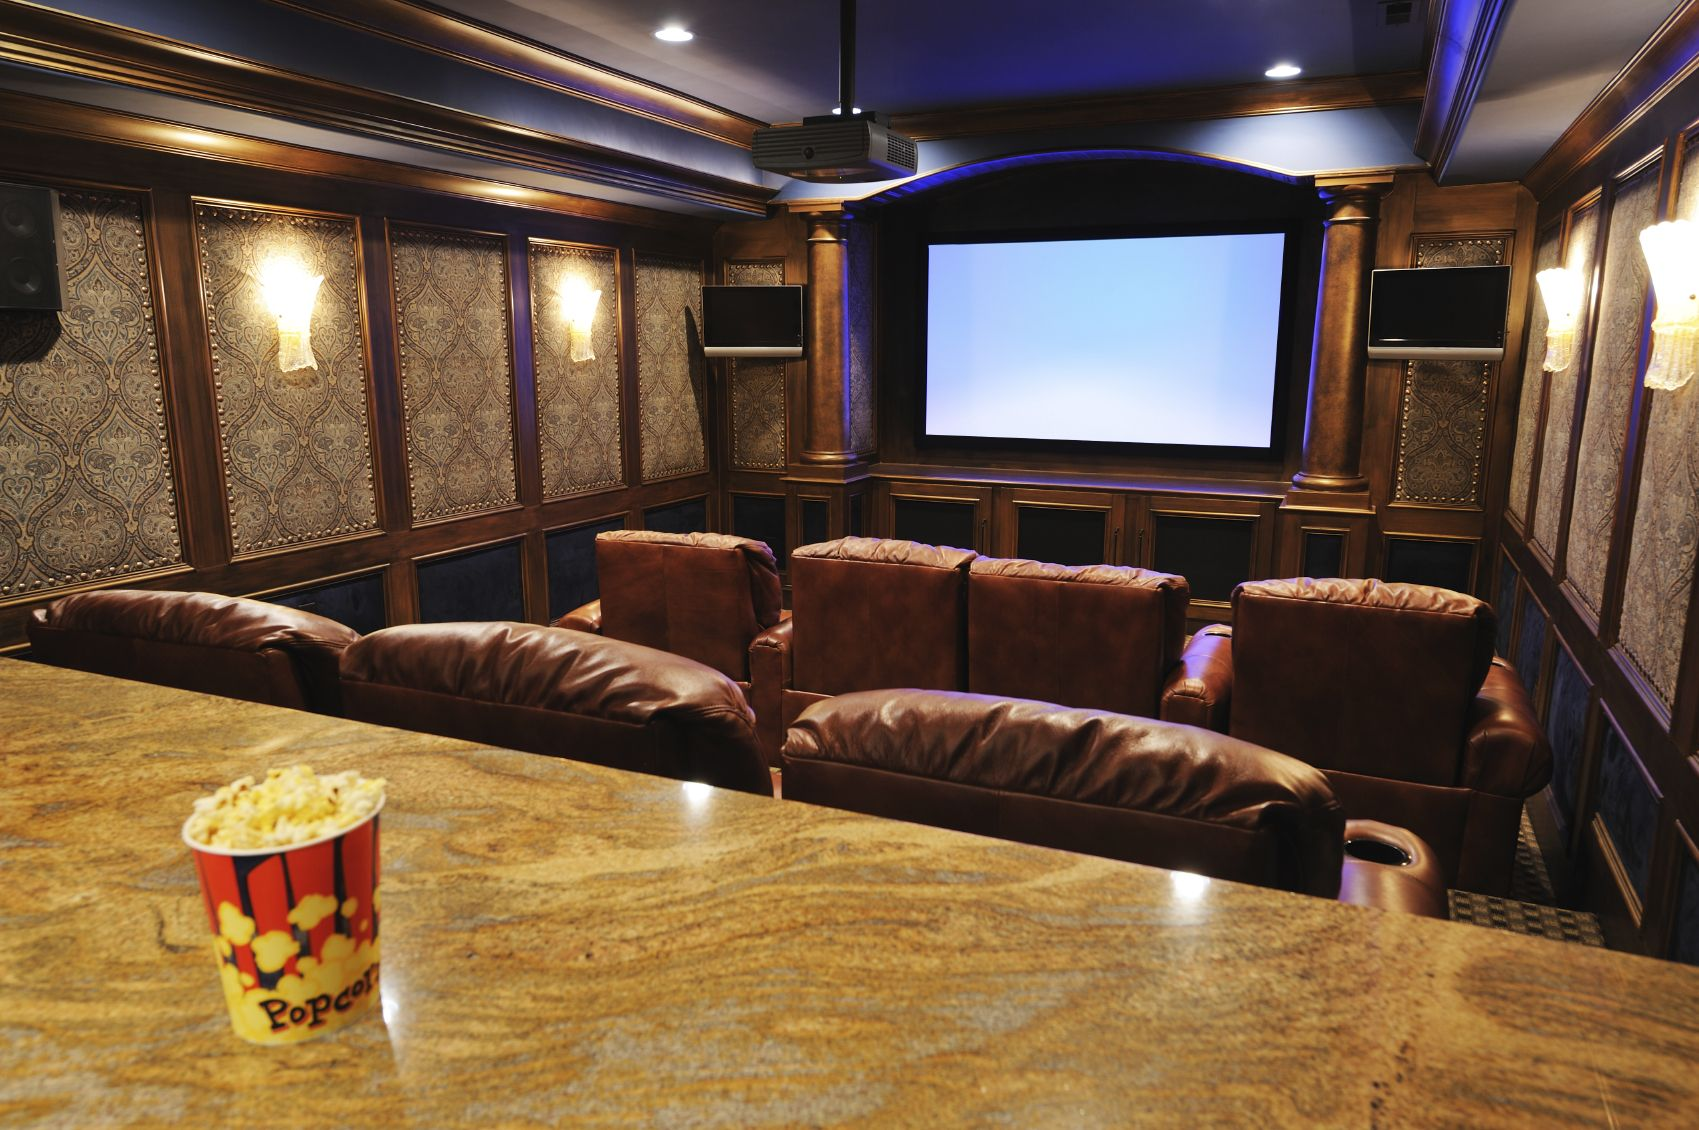 5 tips for setting up a home theater if you re reading for Home theater setup ideas